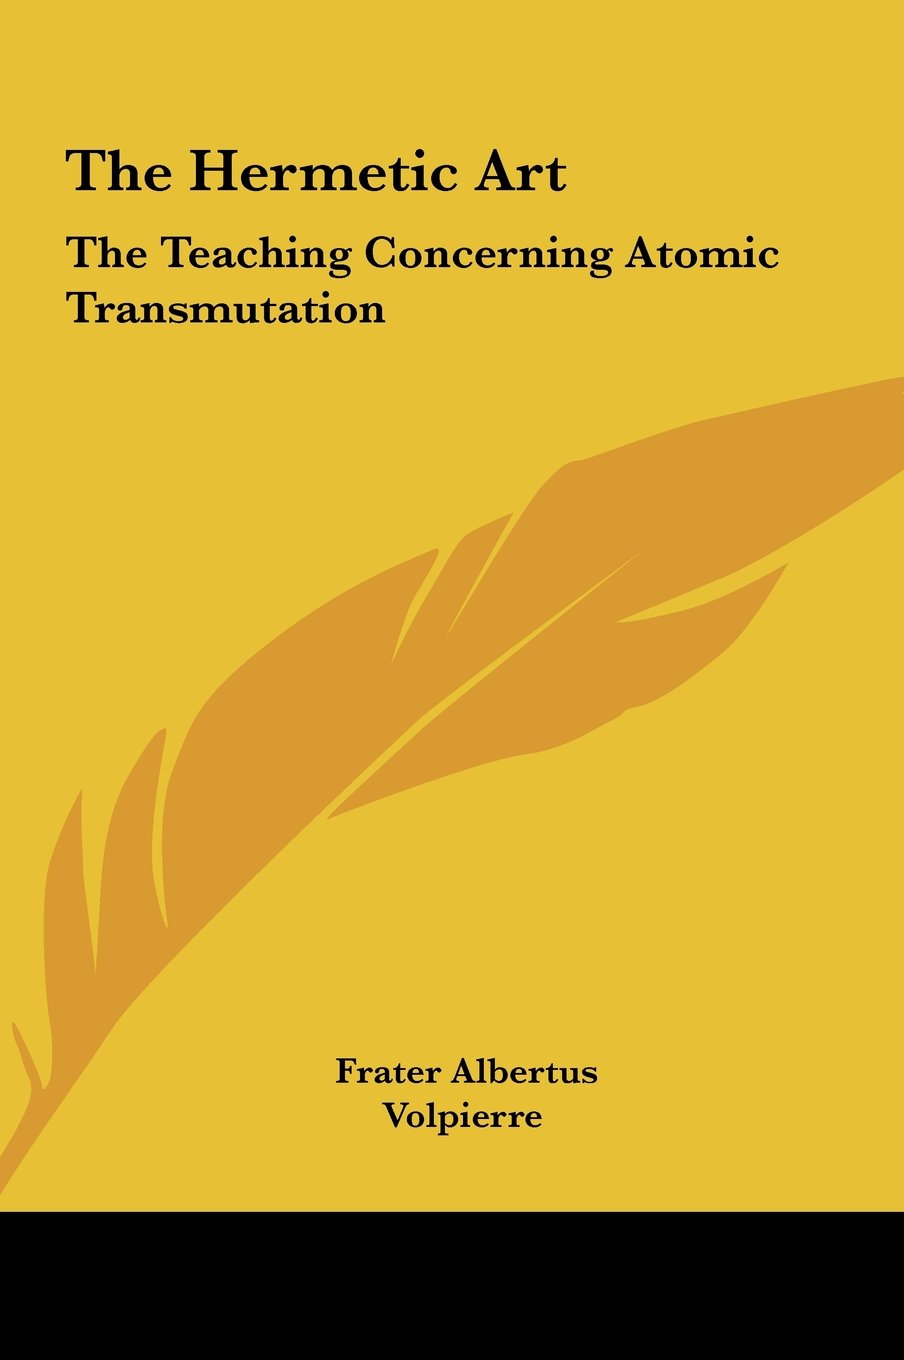 Download The Hermetic Art: The Teaching Concerning Atomic Transmutation PDF